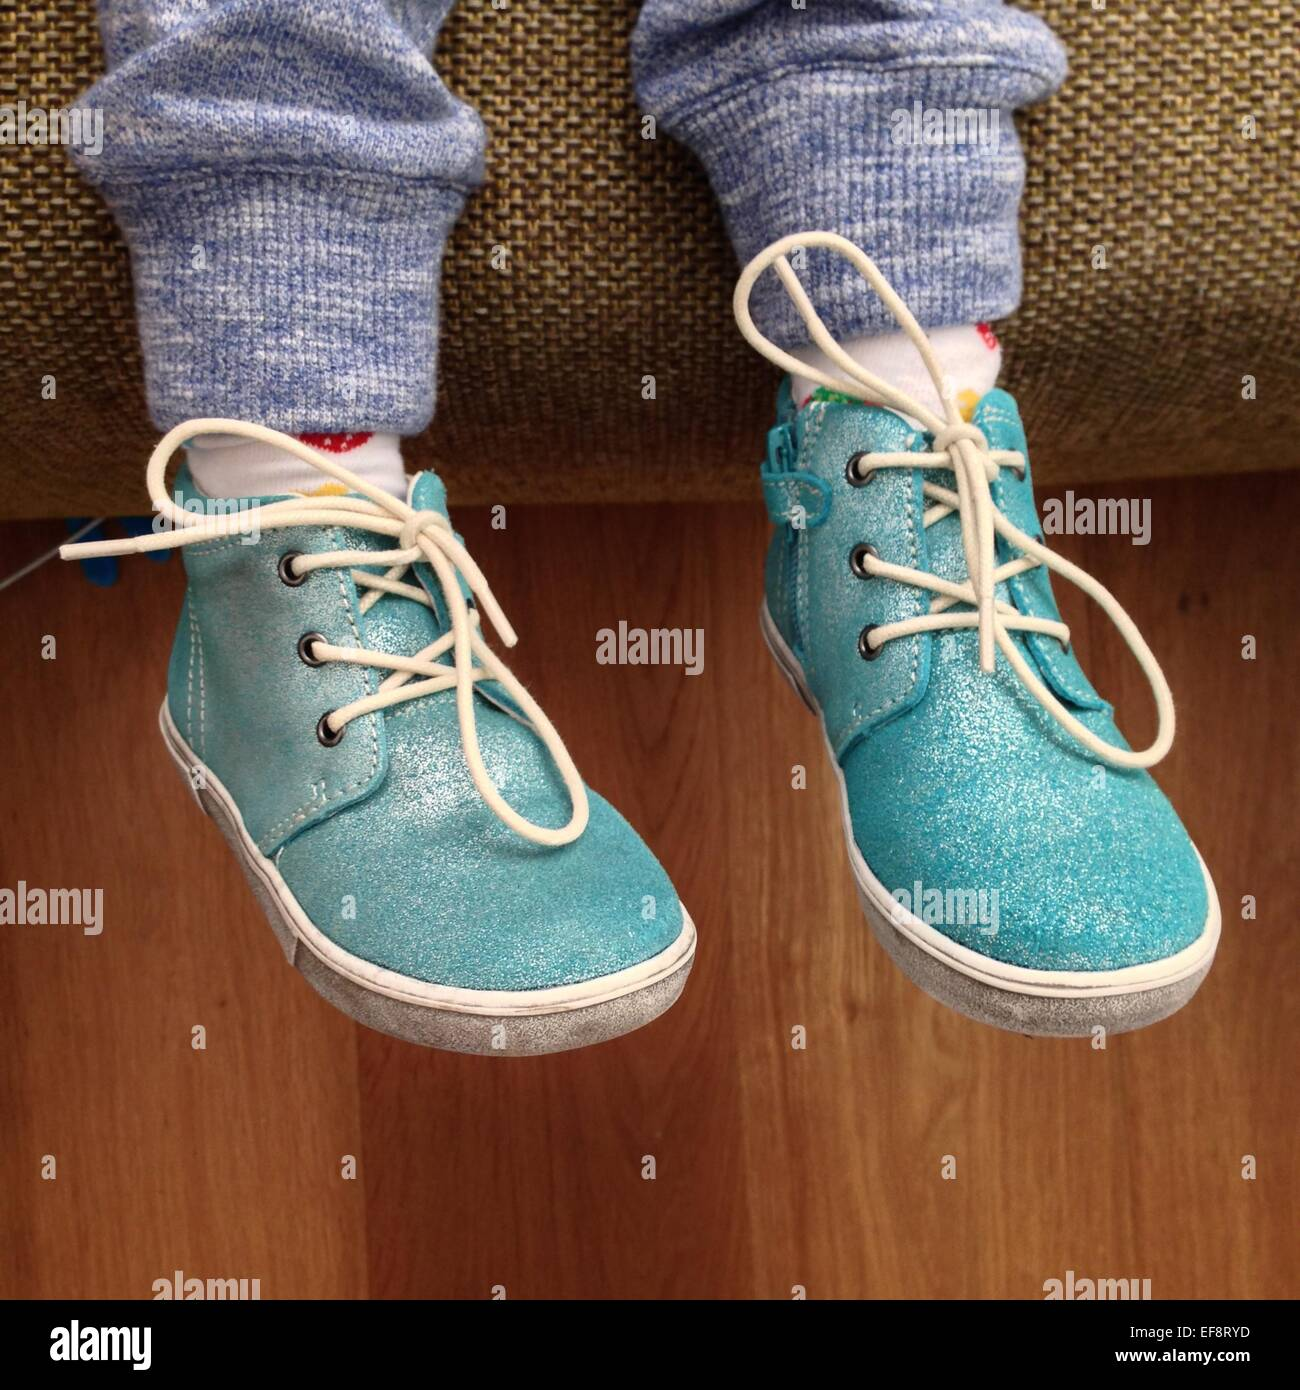 Cropped shot of legs of child wearing turquoise shoes - Stock Image